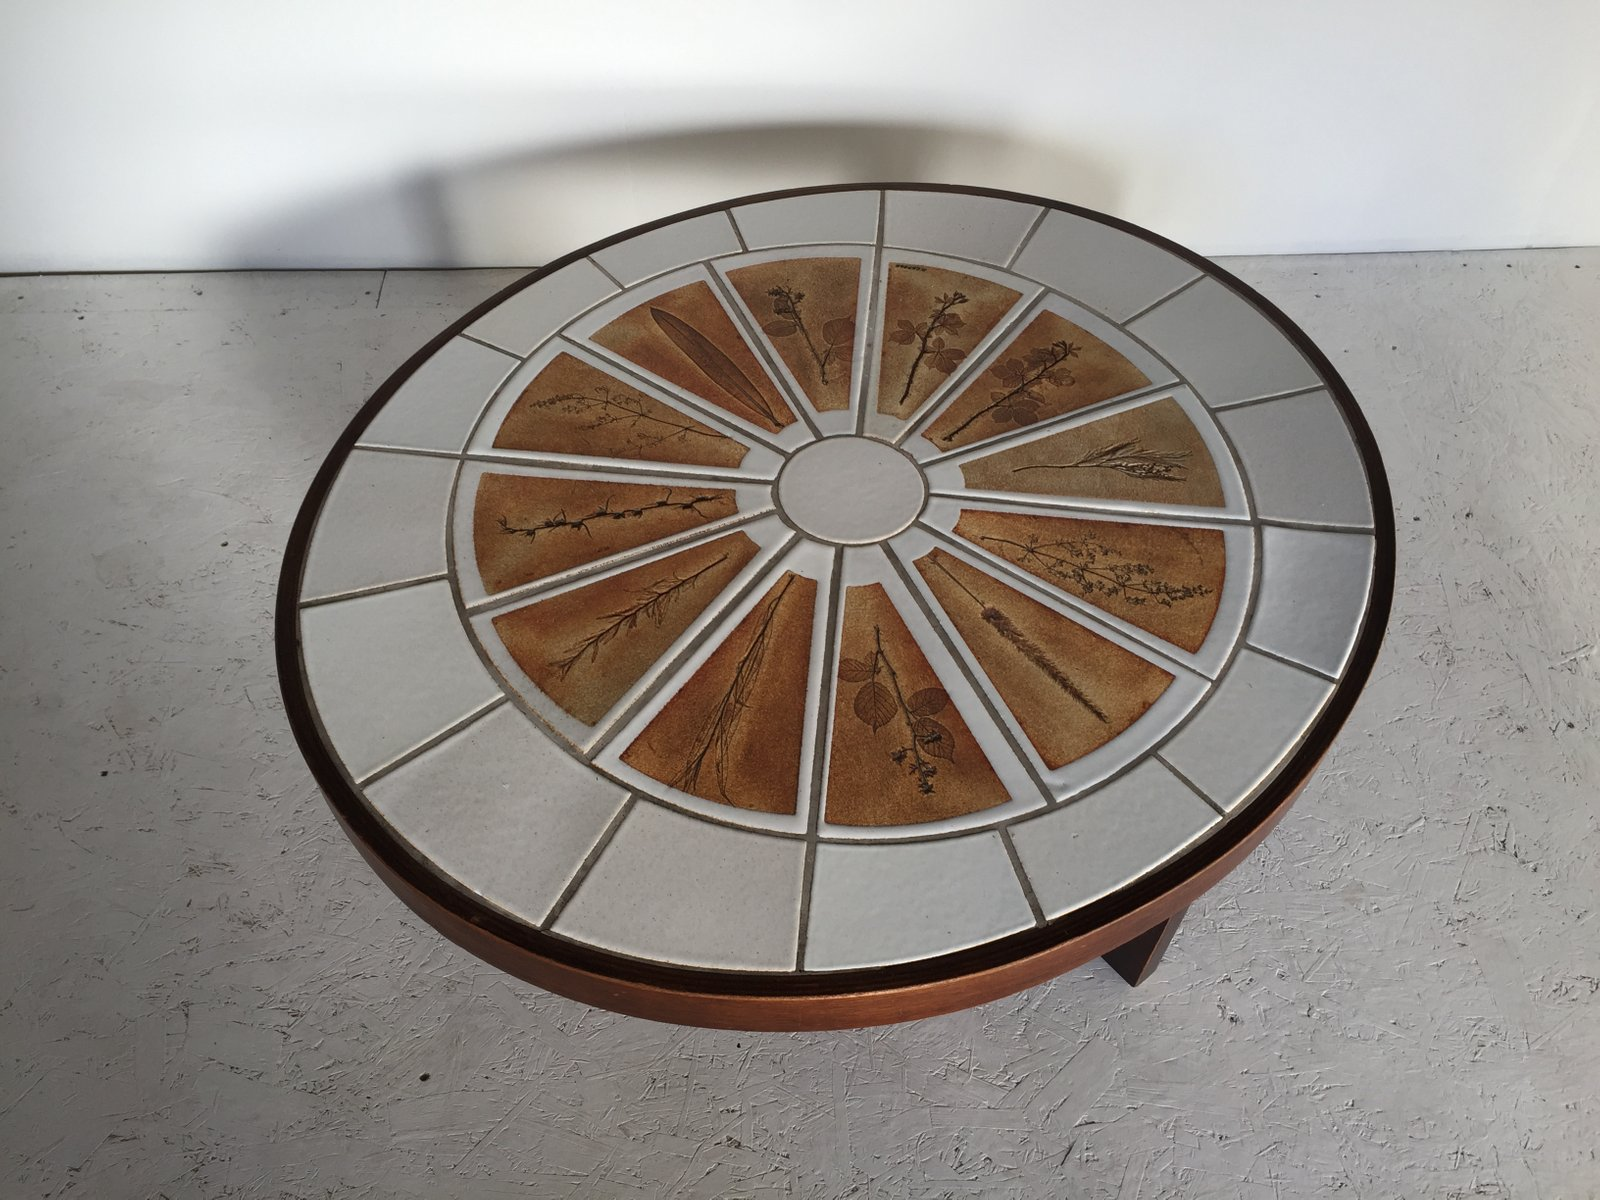 Ceramic herbarium coffee table by roger capron 1960s for sale at pamono - Model herbarium ...